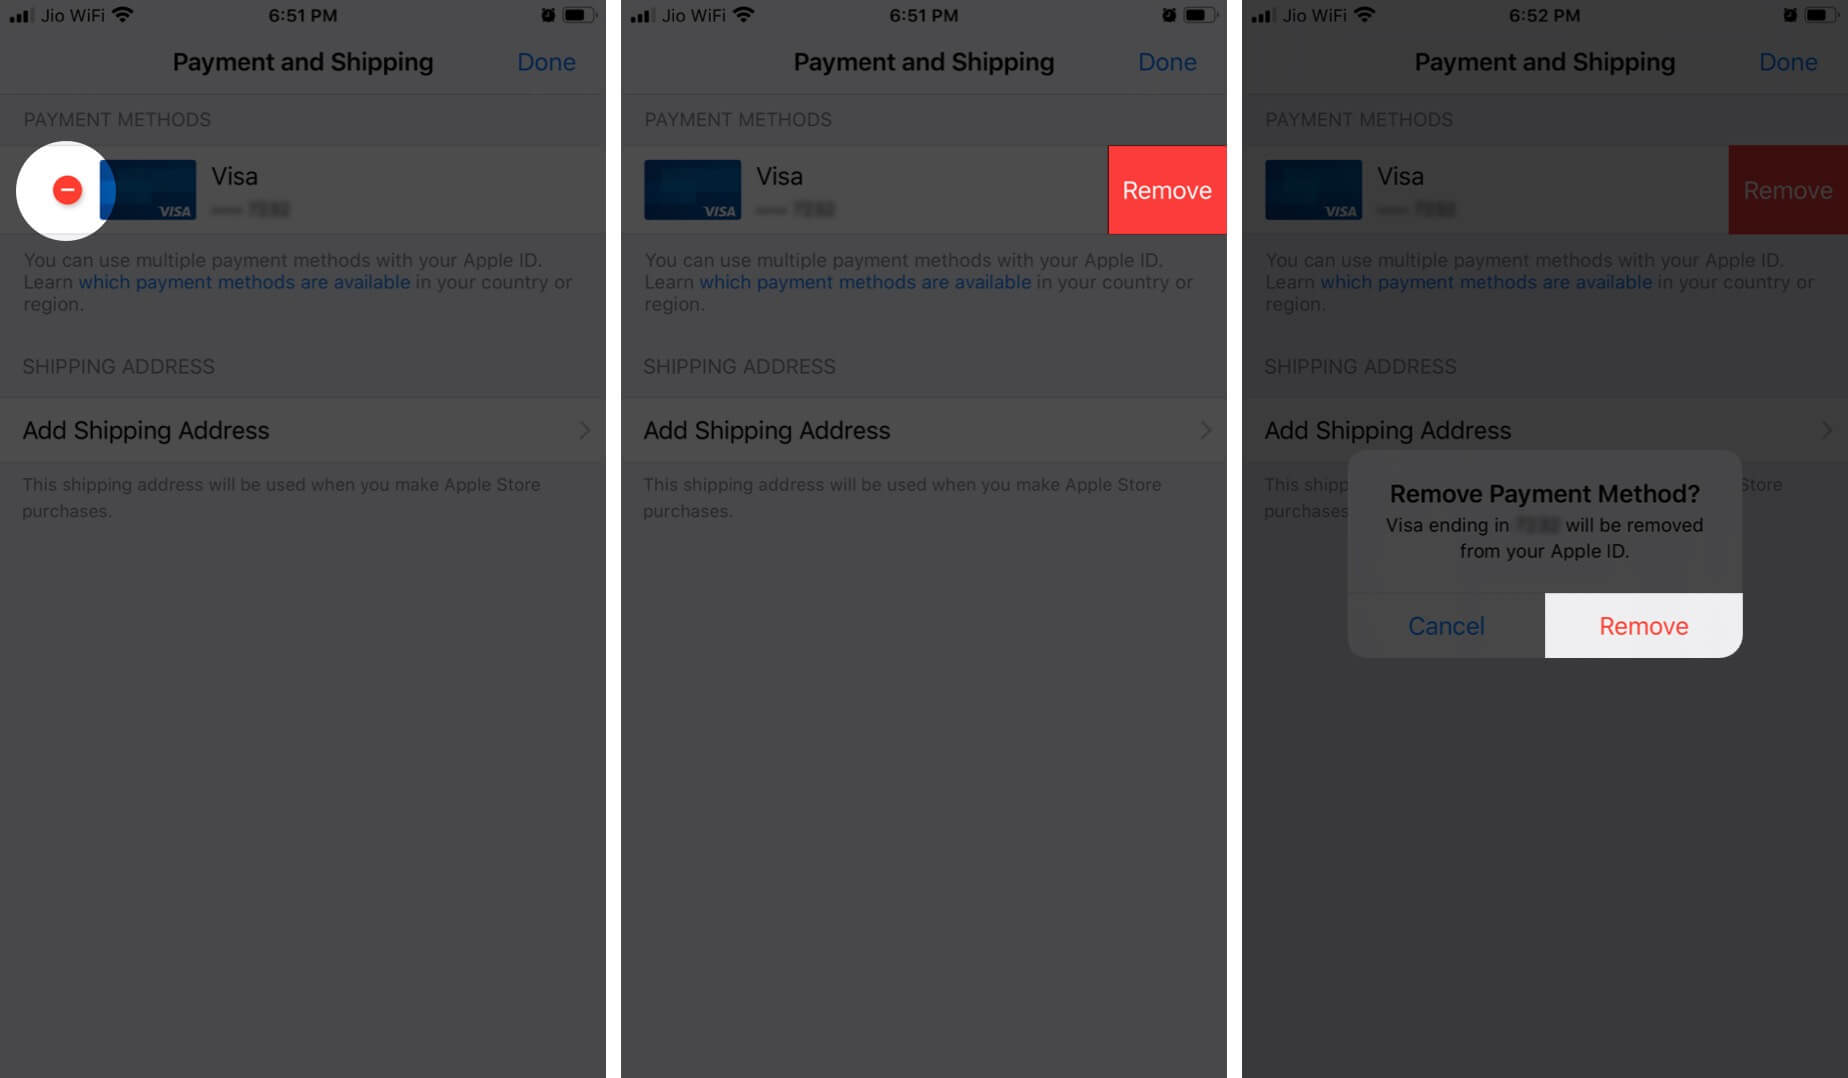 Tap on Remove to Delete Apple ID and Payment Method on iPhone